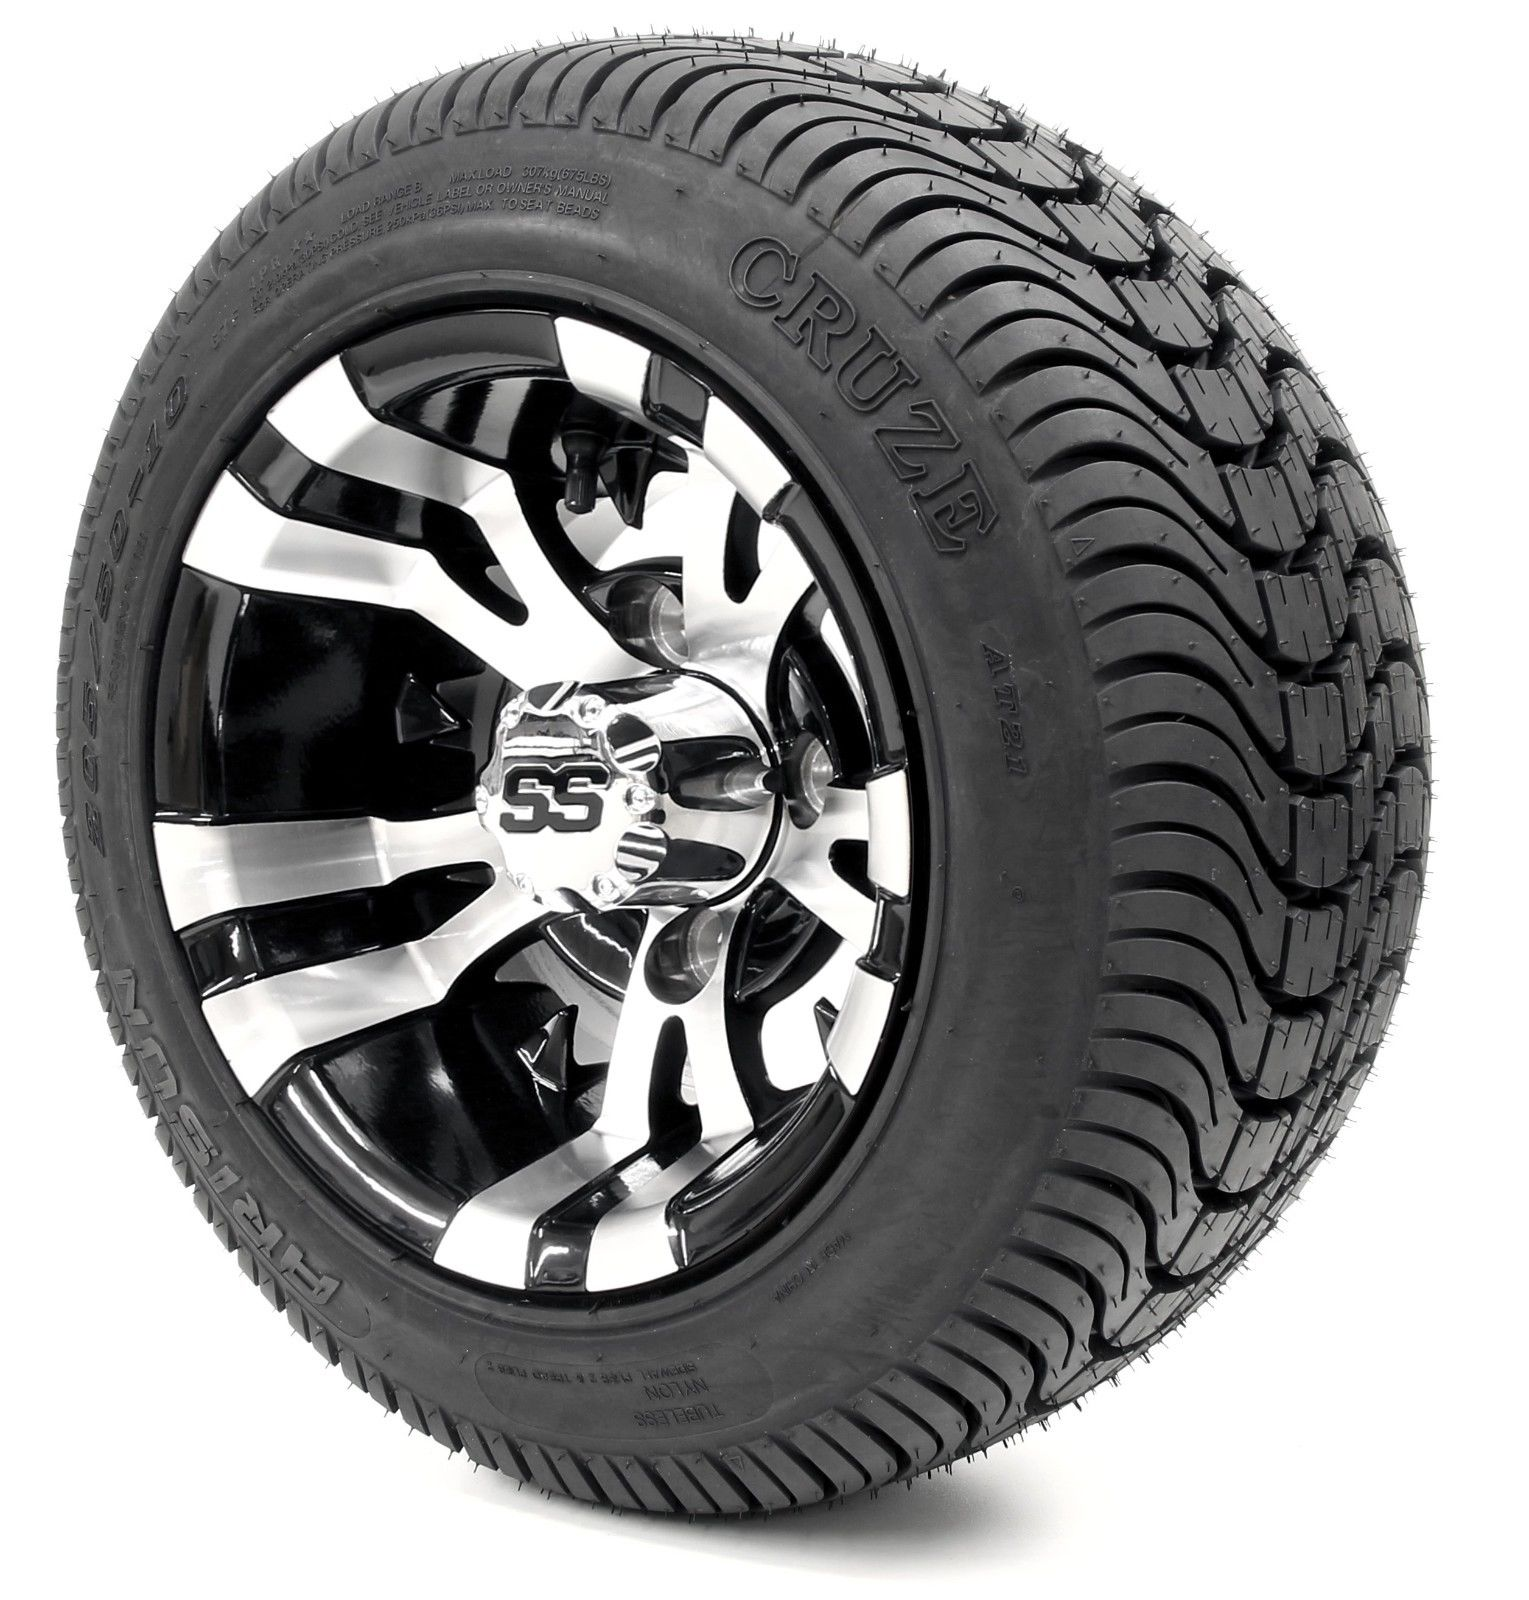 "Golf Cart Wheels and Tires Combo - 10"" Vampire SS w/ Low ..."